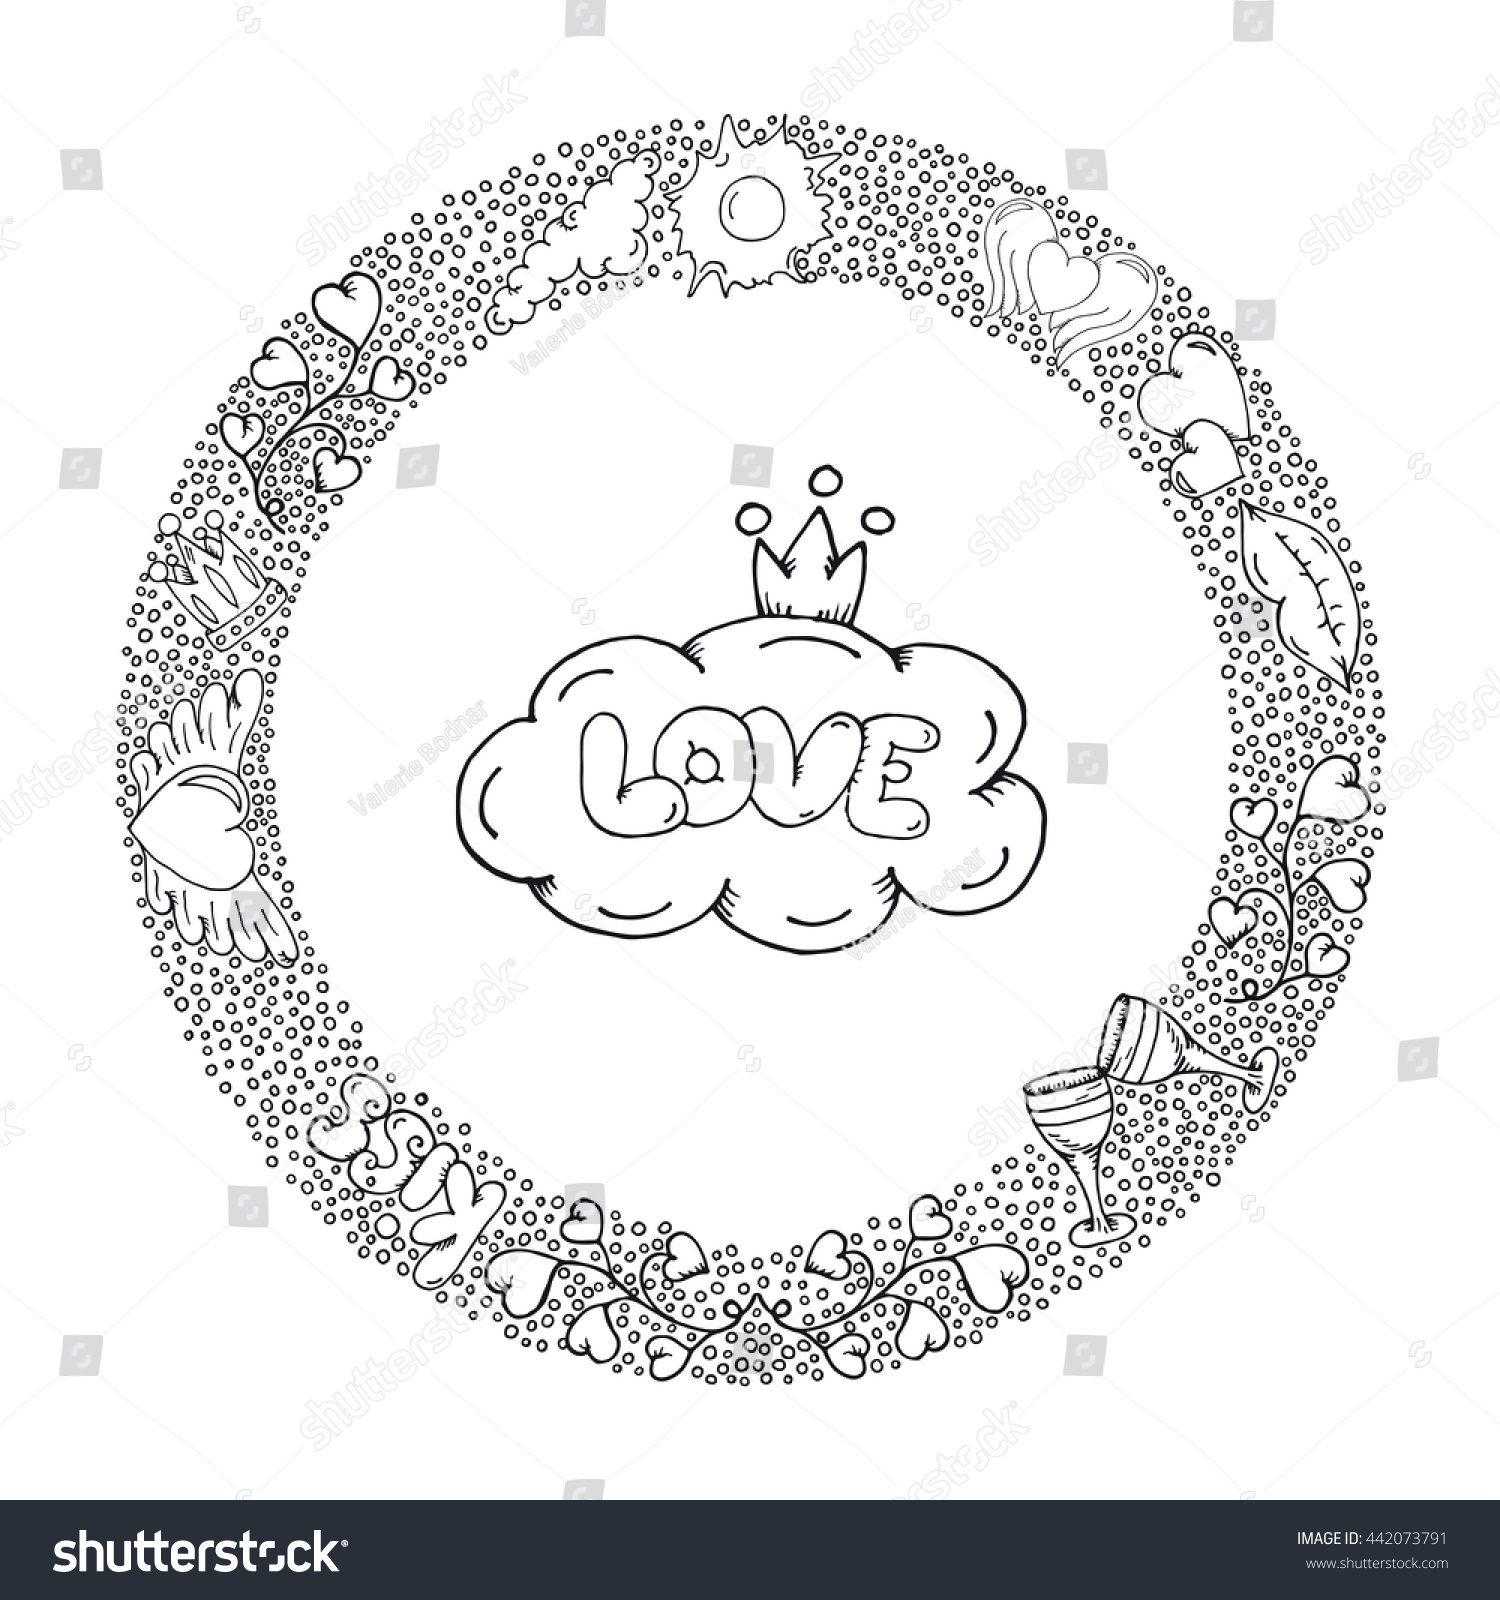 Hand Drawn Love Coloring Page Wedding Ink With Small Details